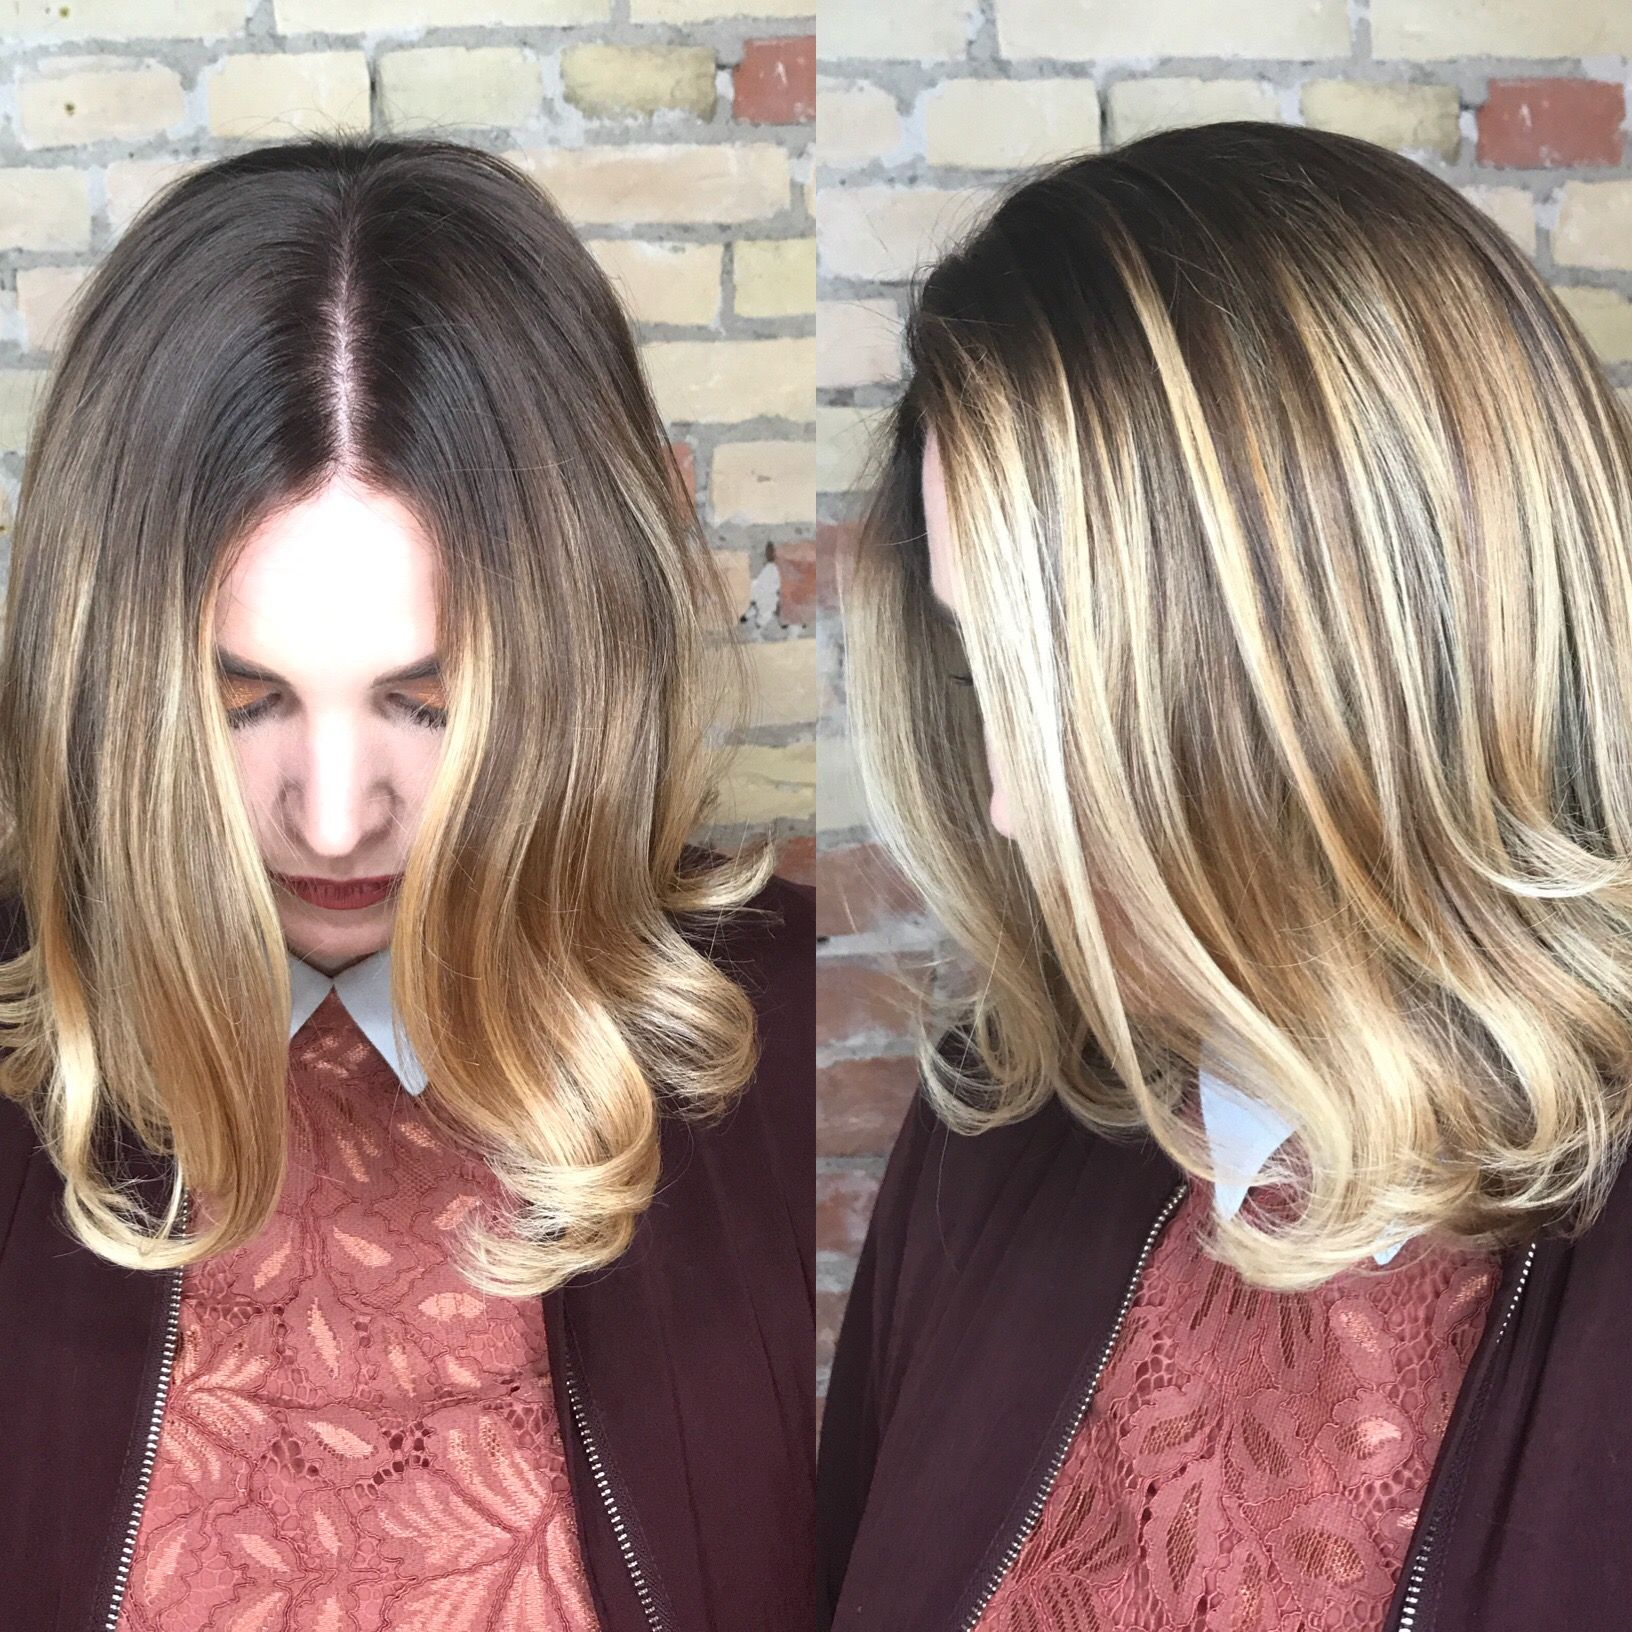 Dark roots and blonde tips Balayage By Neel vandenengh